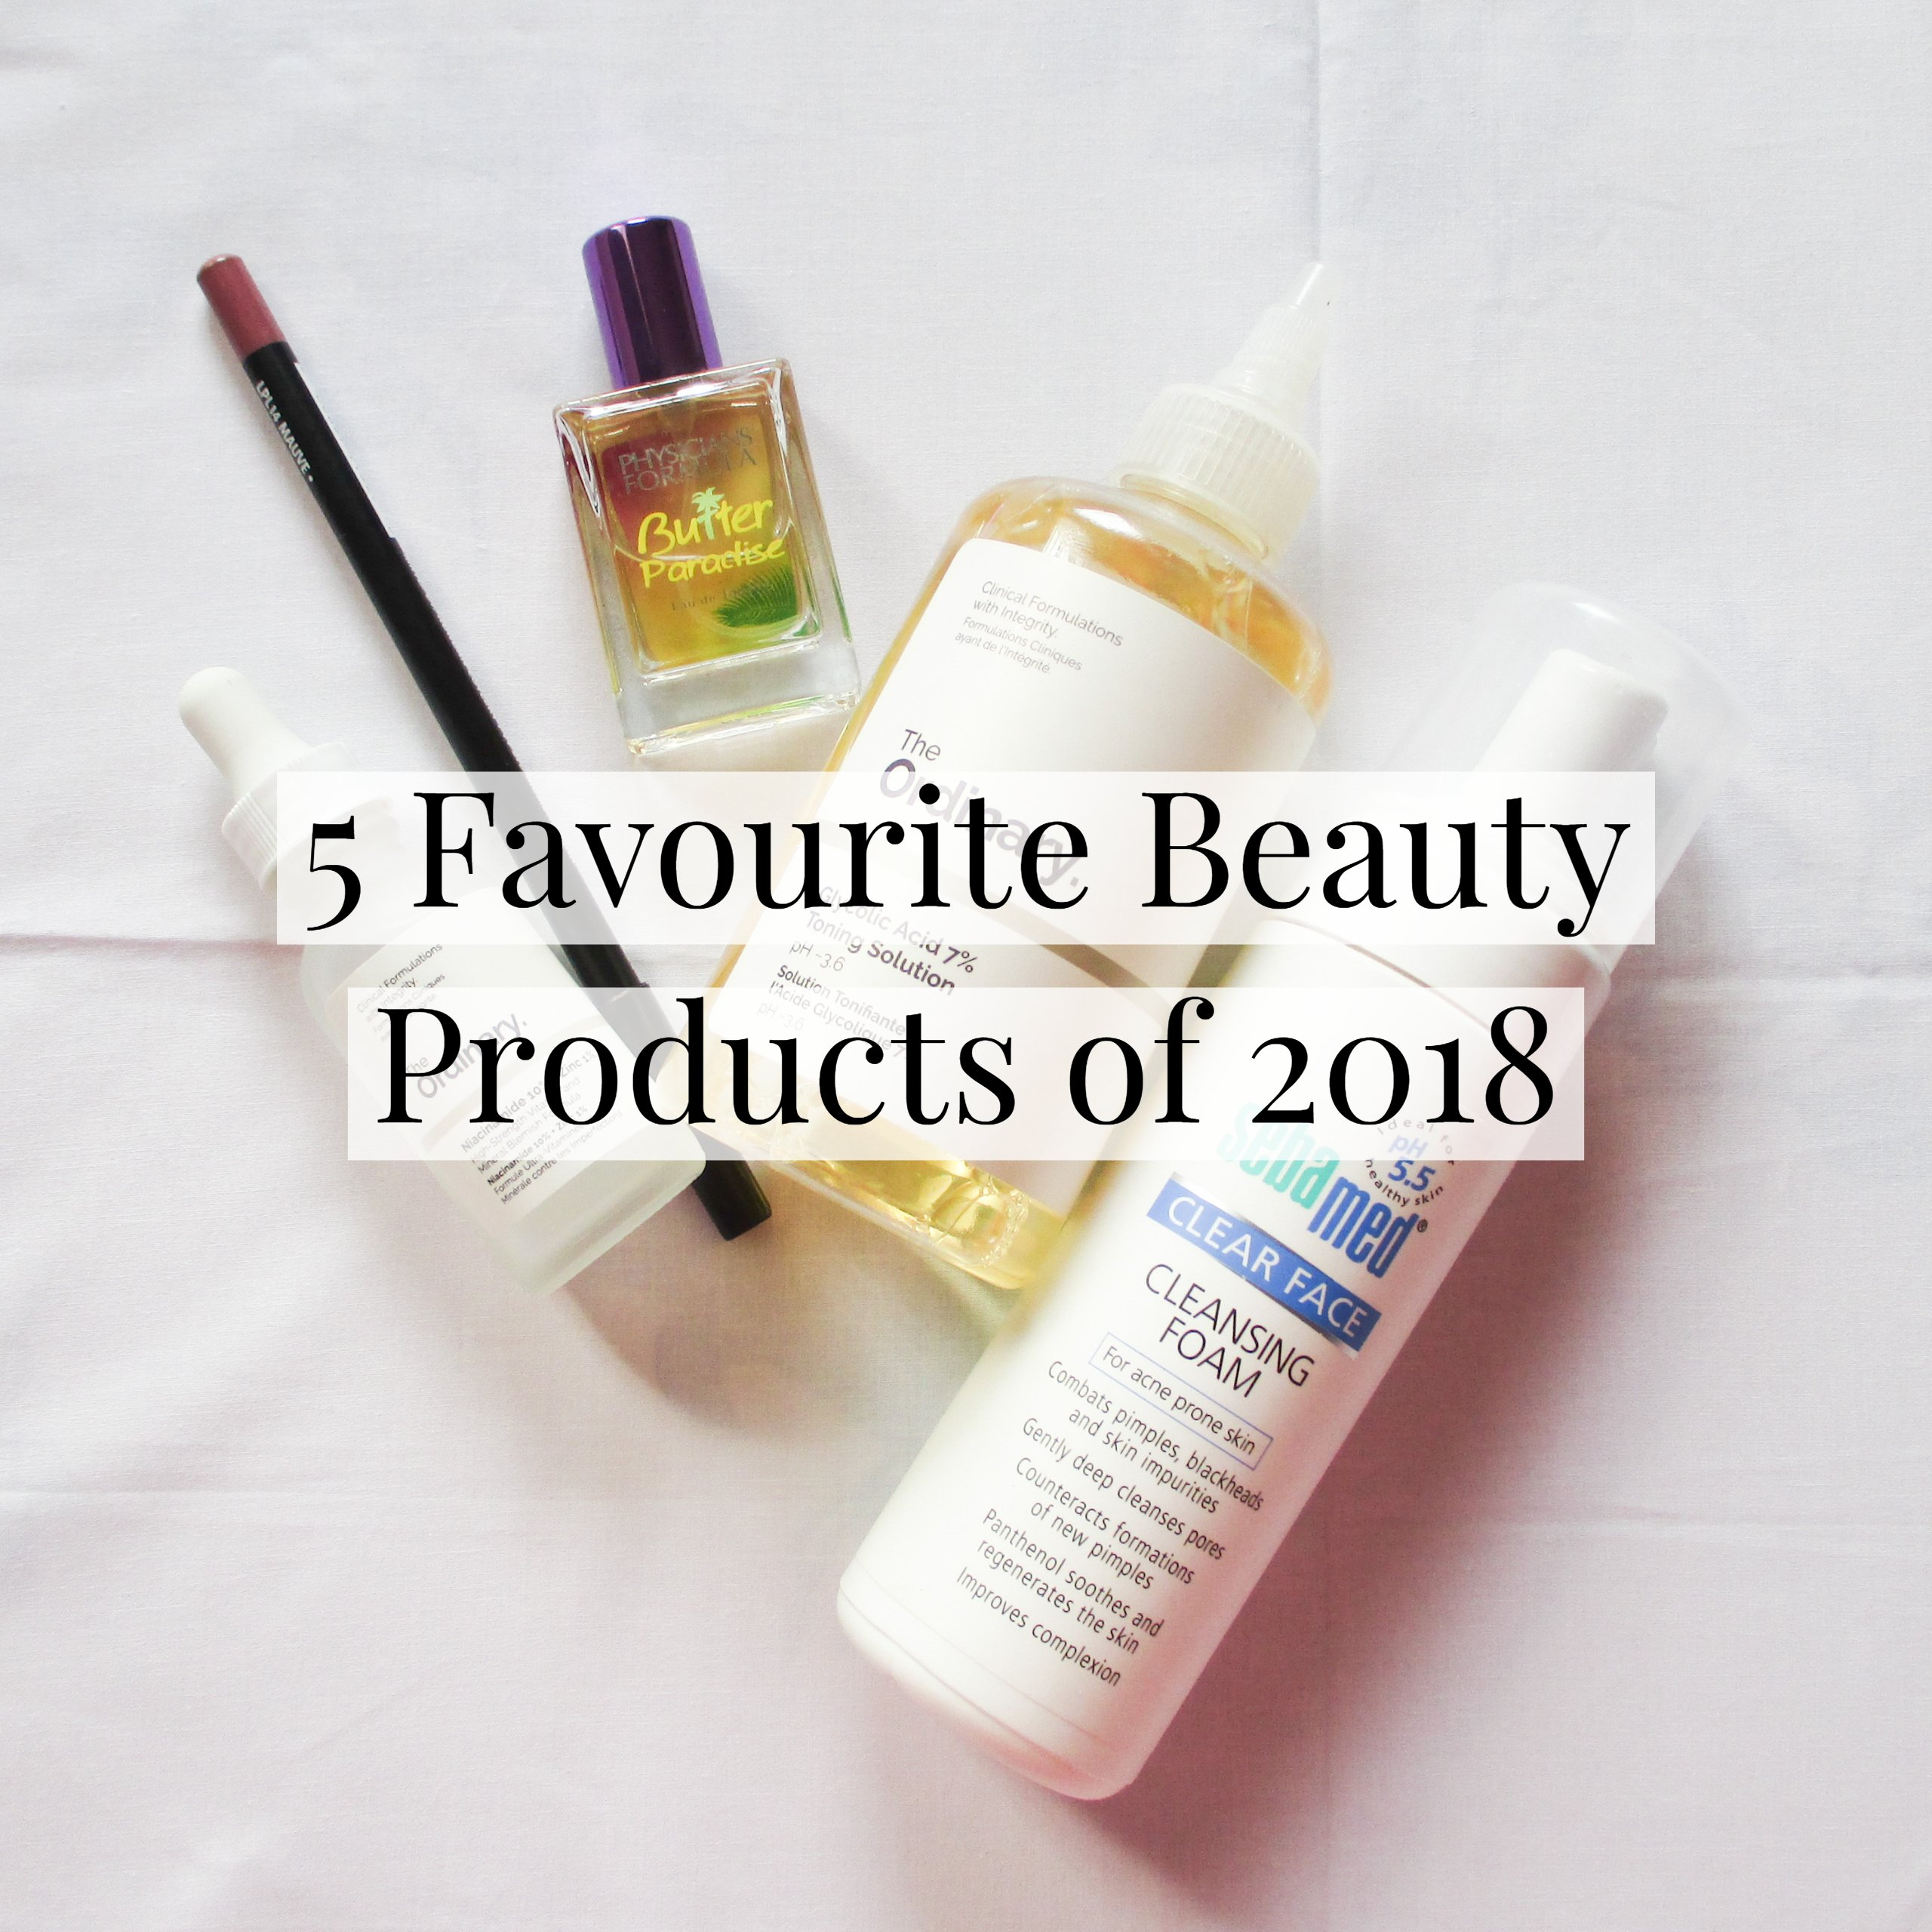 5 Favourite Beauty Products of 2018